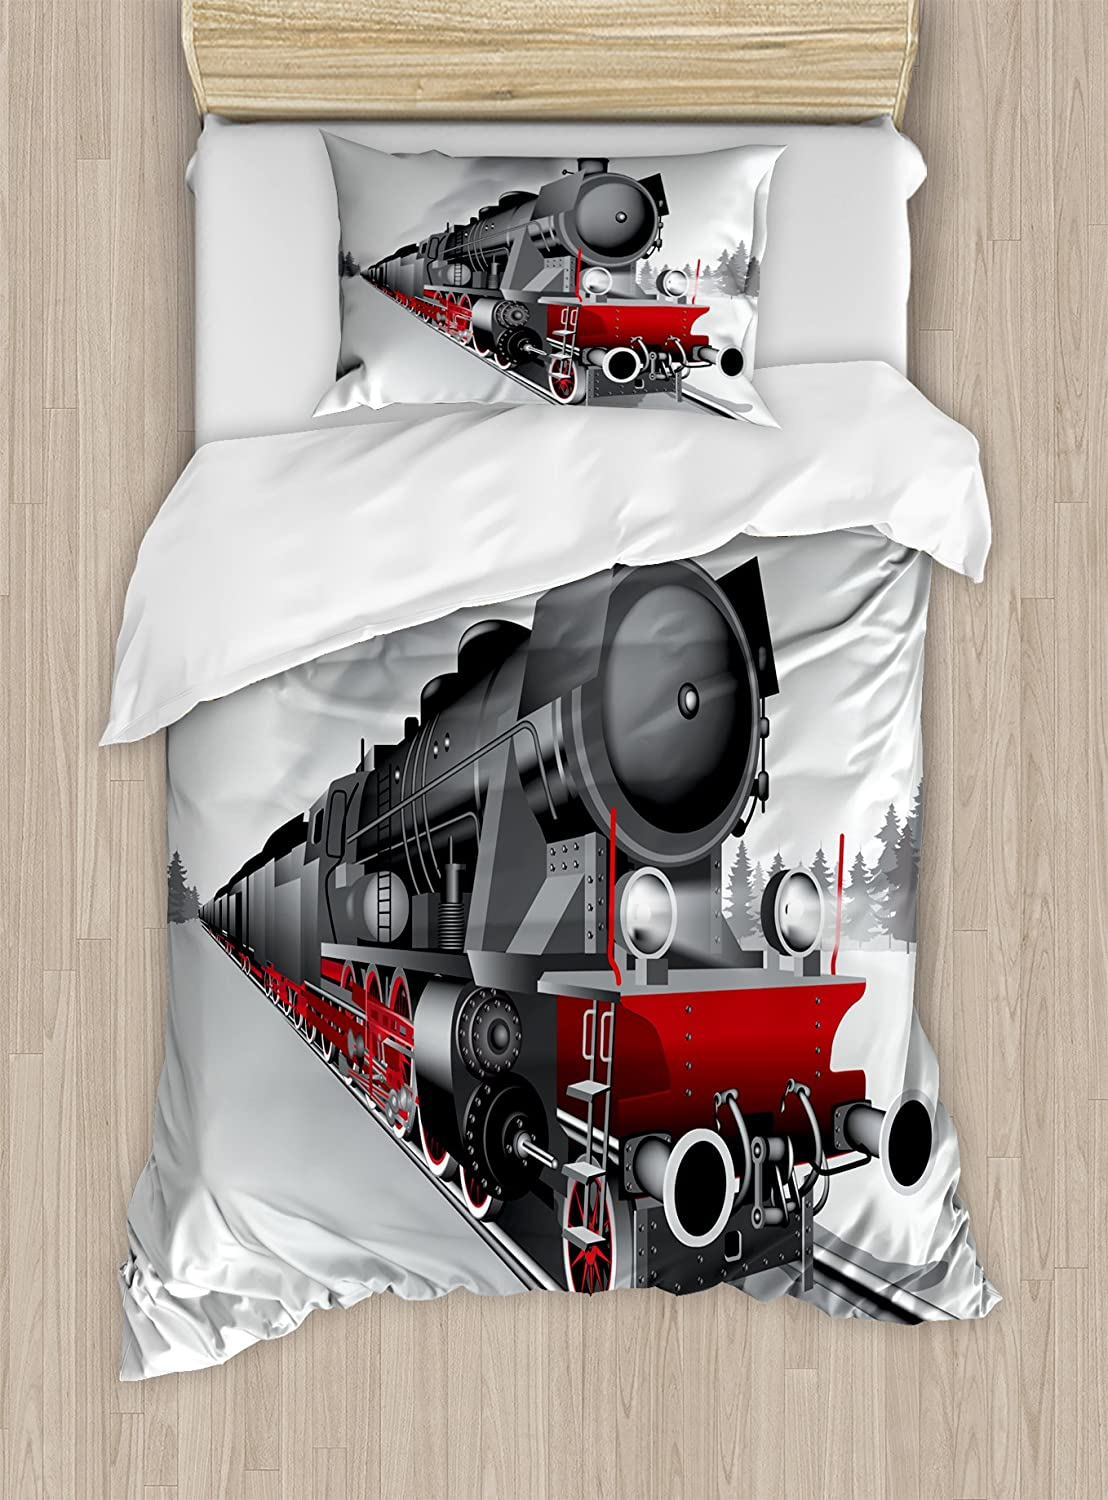 Ambesonne Steam Engine Duvet Cover Set Twin Size, Locomotive Red Black Train on Steel Railway Track Travel Adventure Graphic Print, Decorative 2 Piece Bedding Set with 1 Pillow Sham, Red Grey